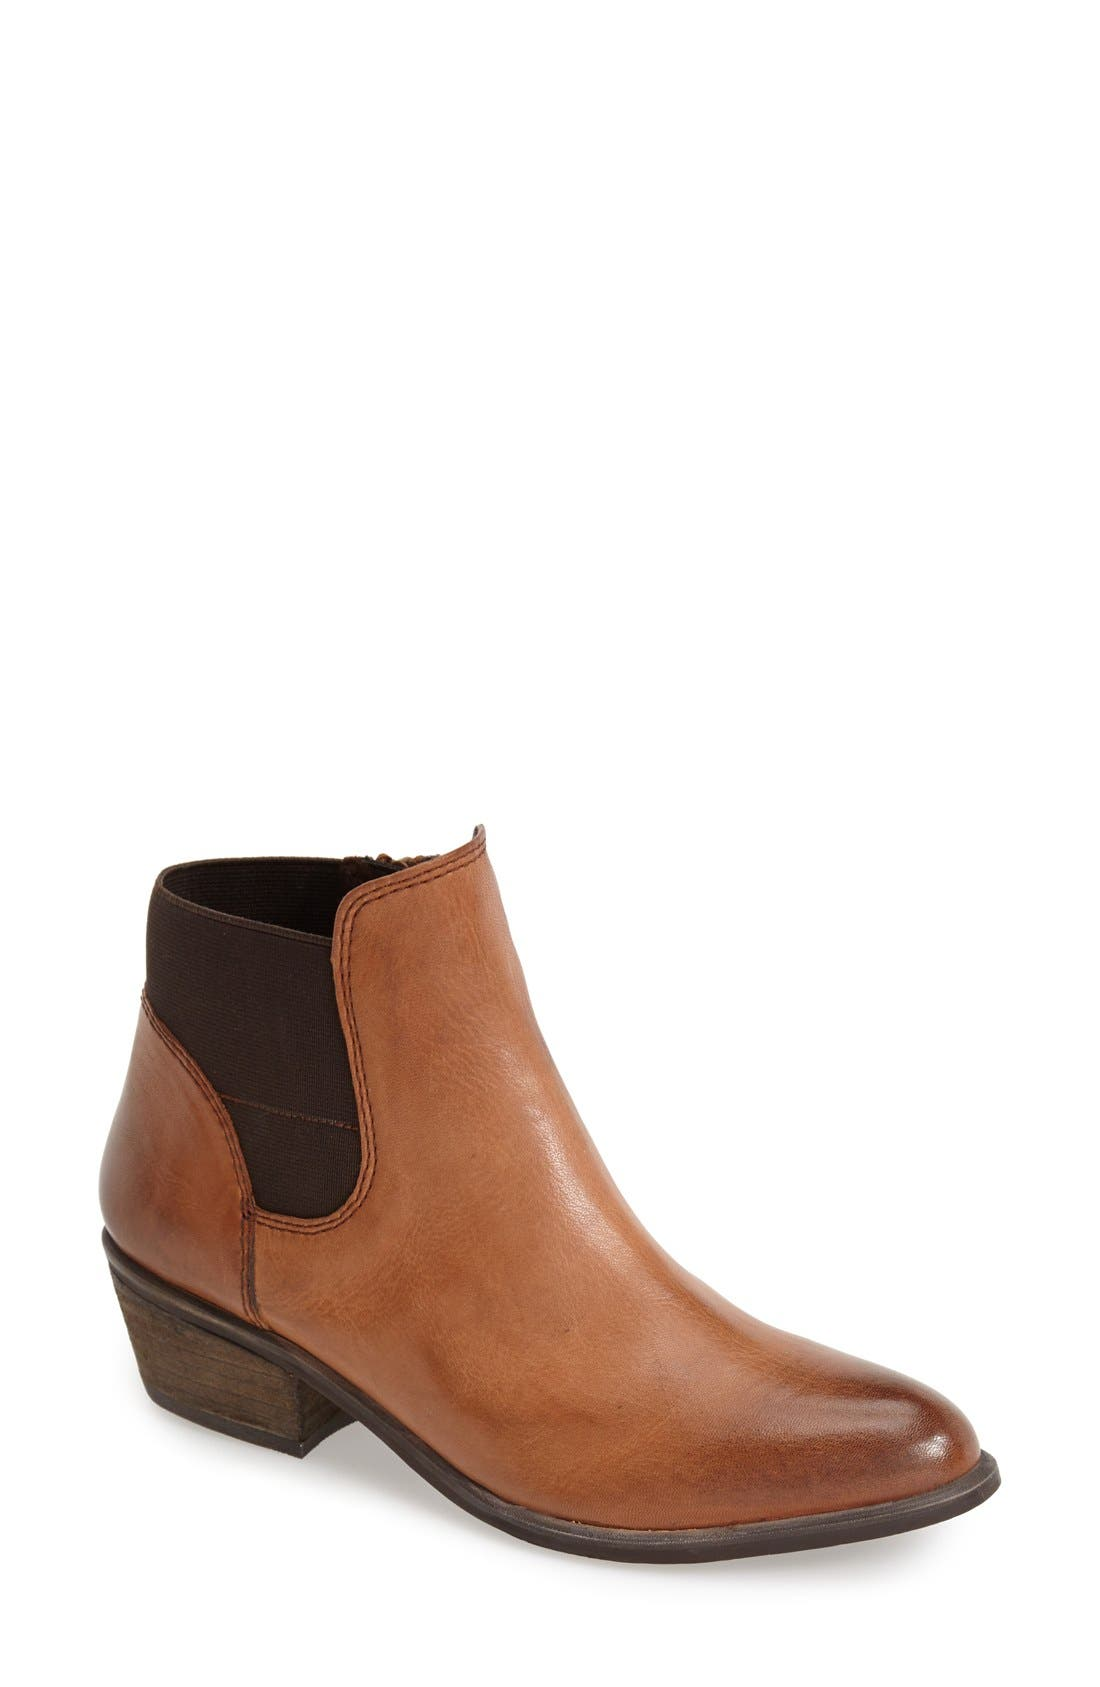 Alternate Image 1 Selected - Steve Madden 'Rozamare' Leather Ankle Bootie (Women)